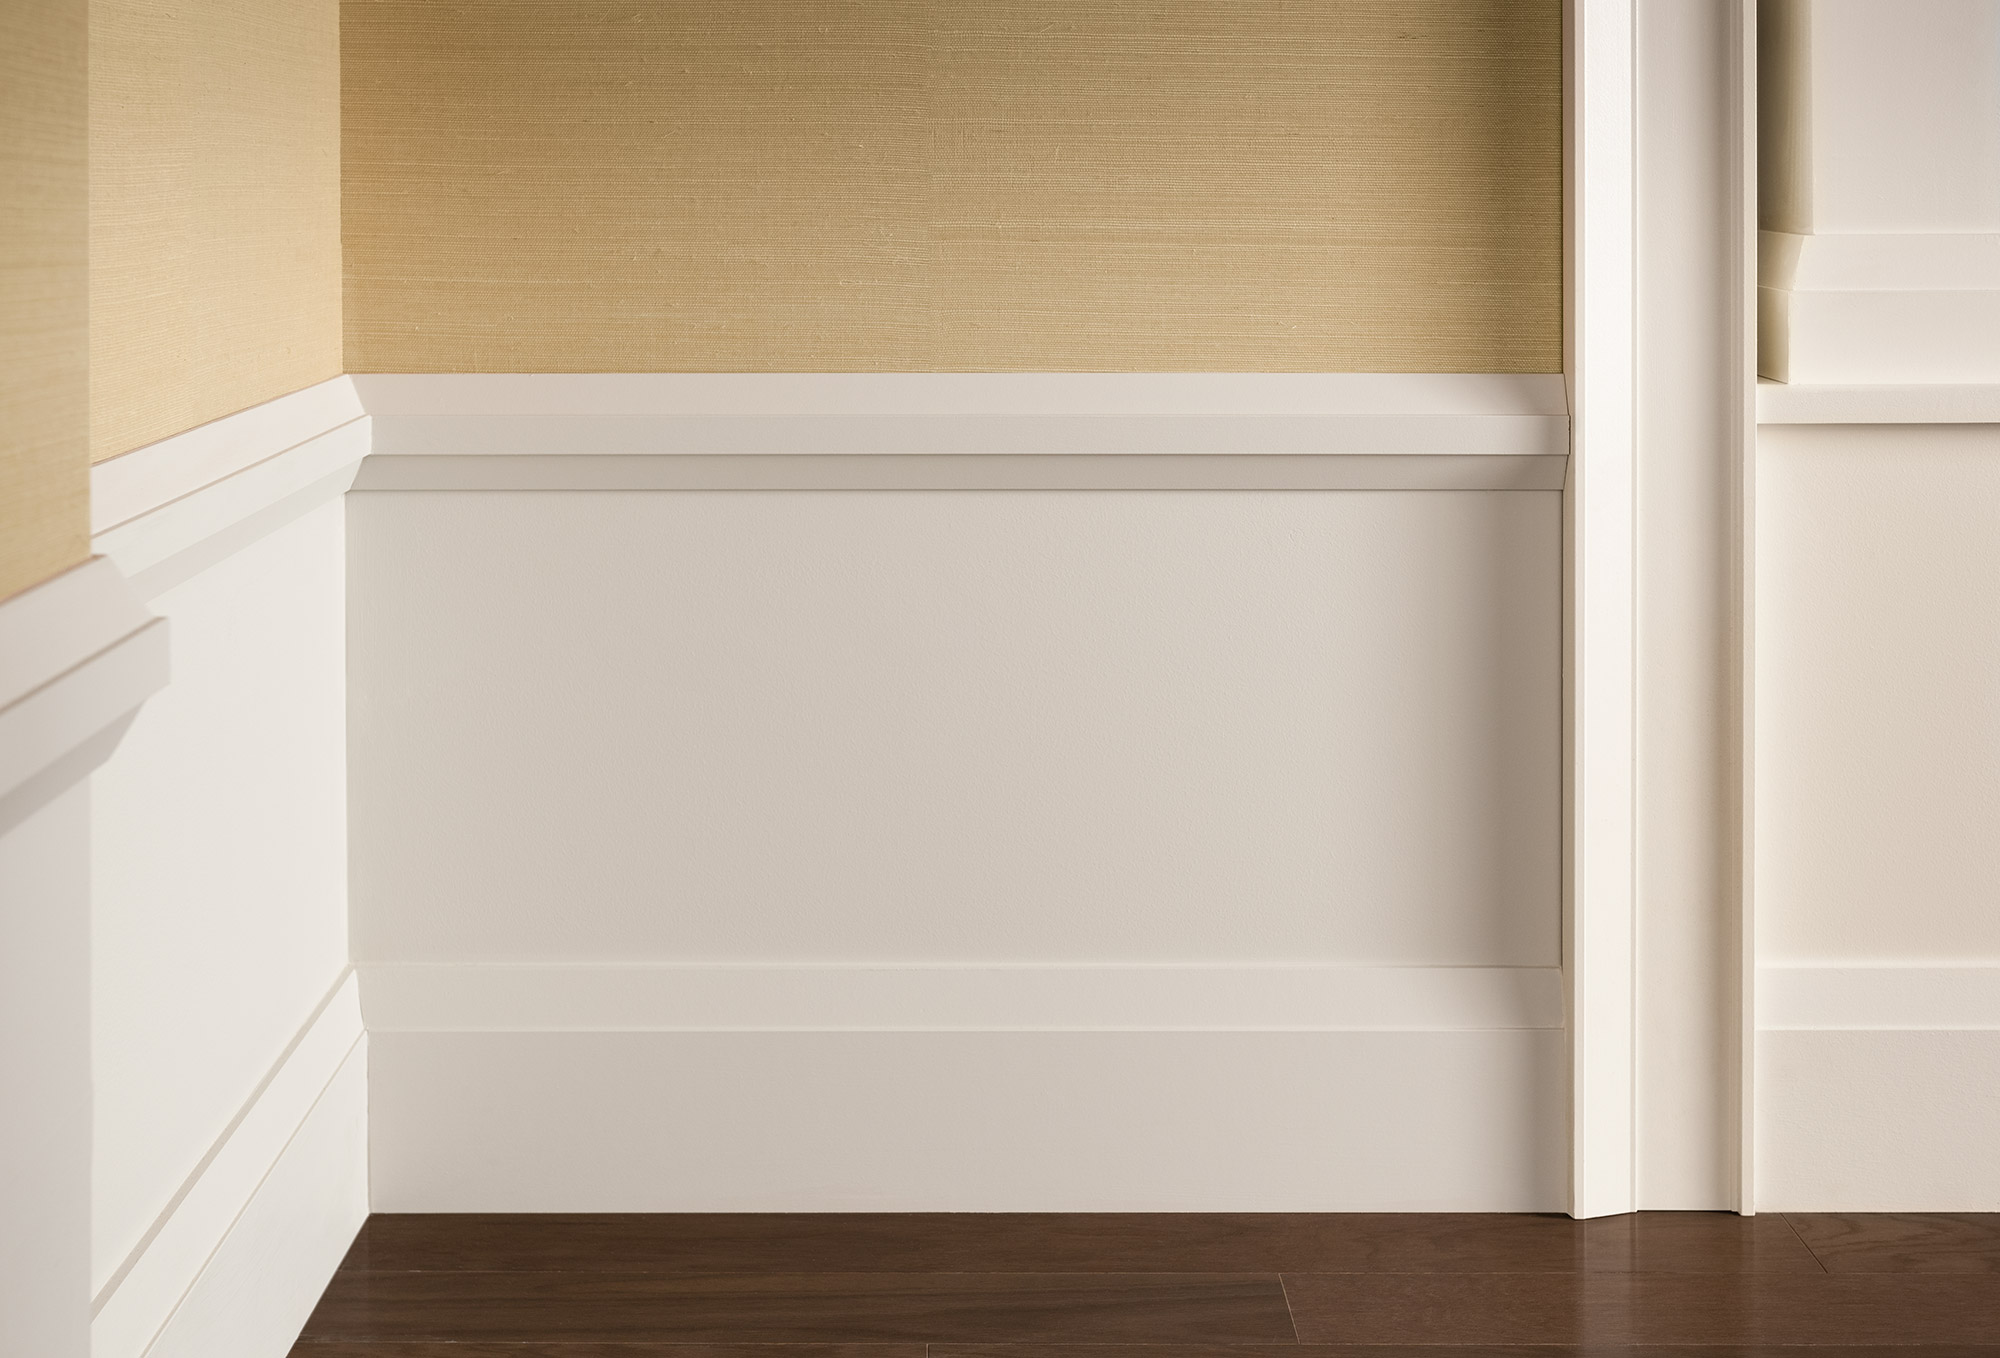 verysquare basechairrail jpg 2000 1358 baseboards and trim